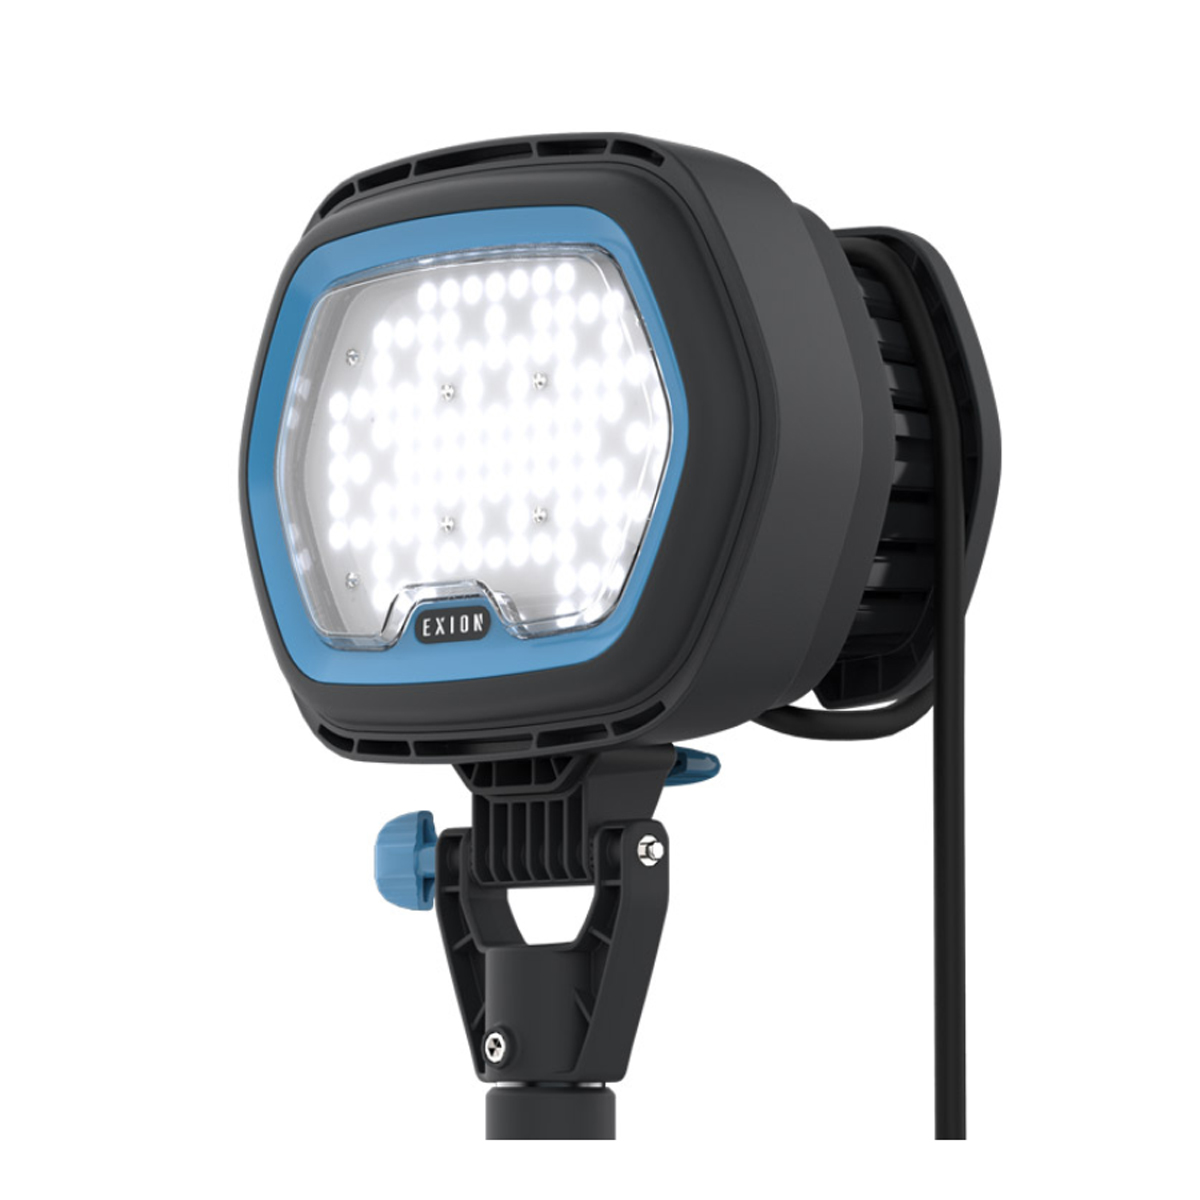 Exion E LED Model EXION E1 range of high output LED industrial site lighting